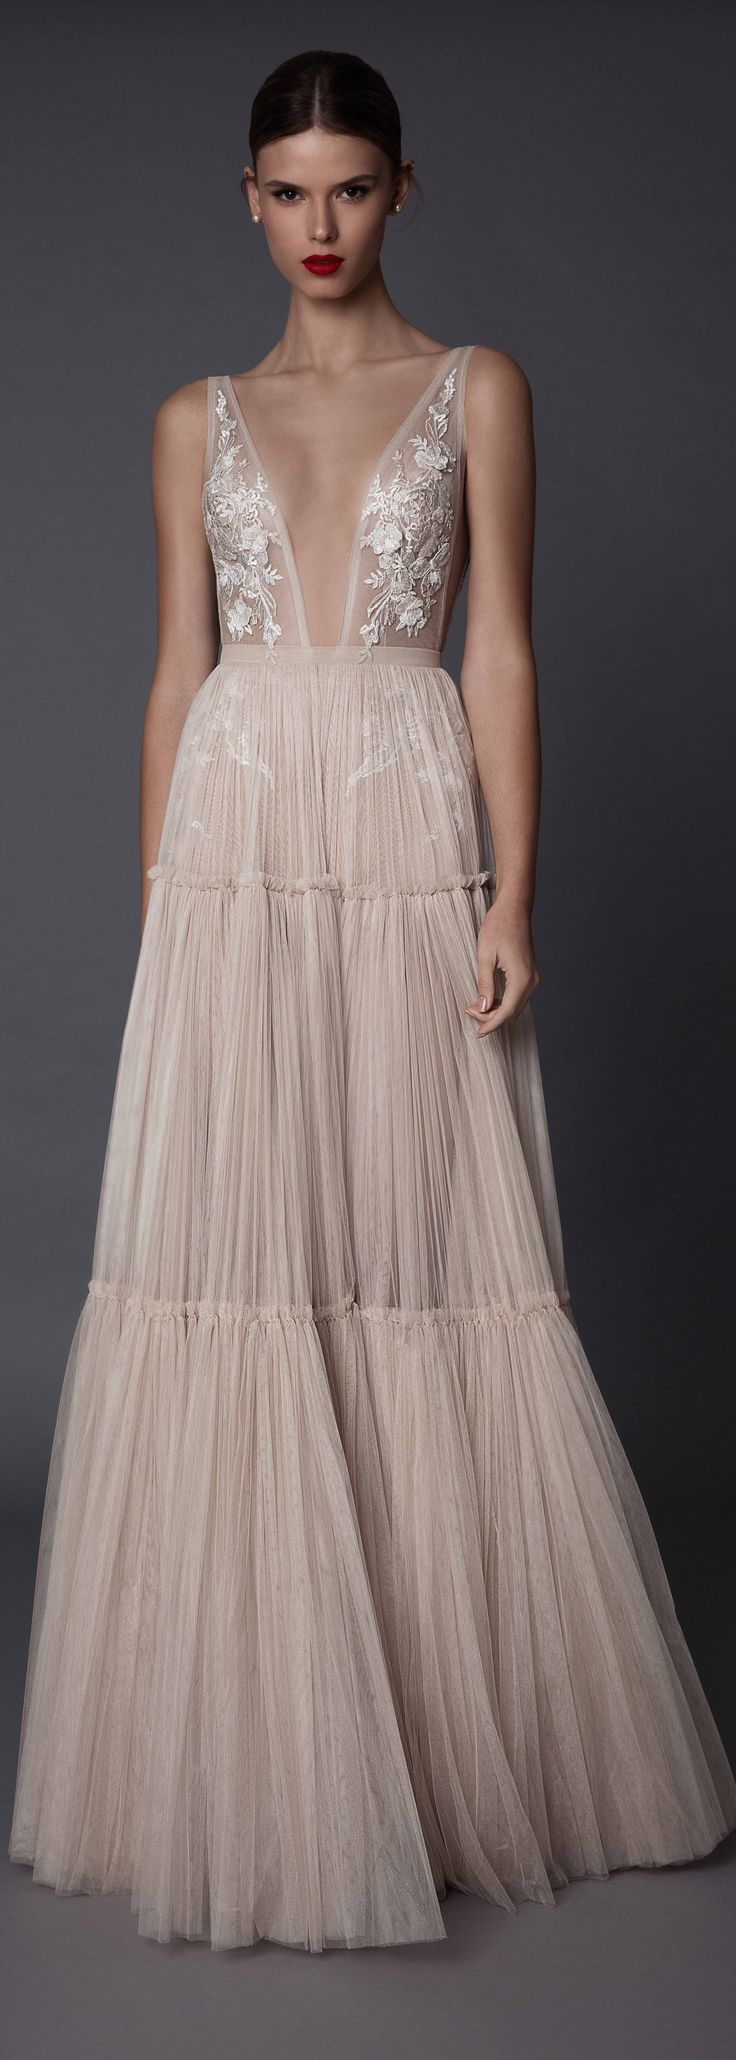 Spectacular Berta Bridal Annabel pleated dress with lace